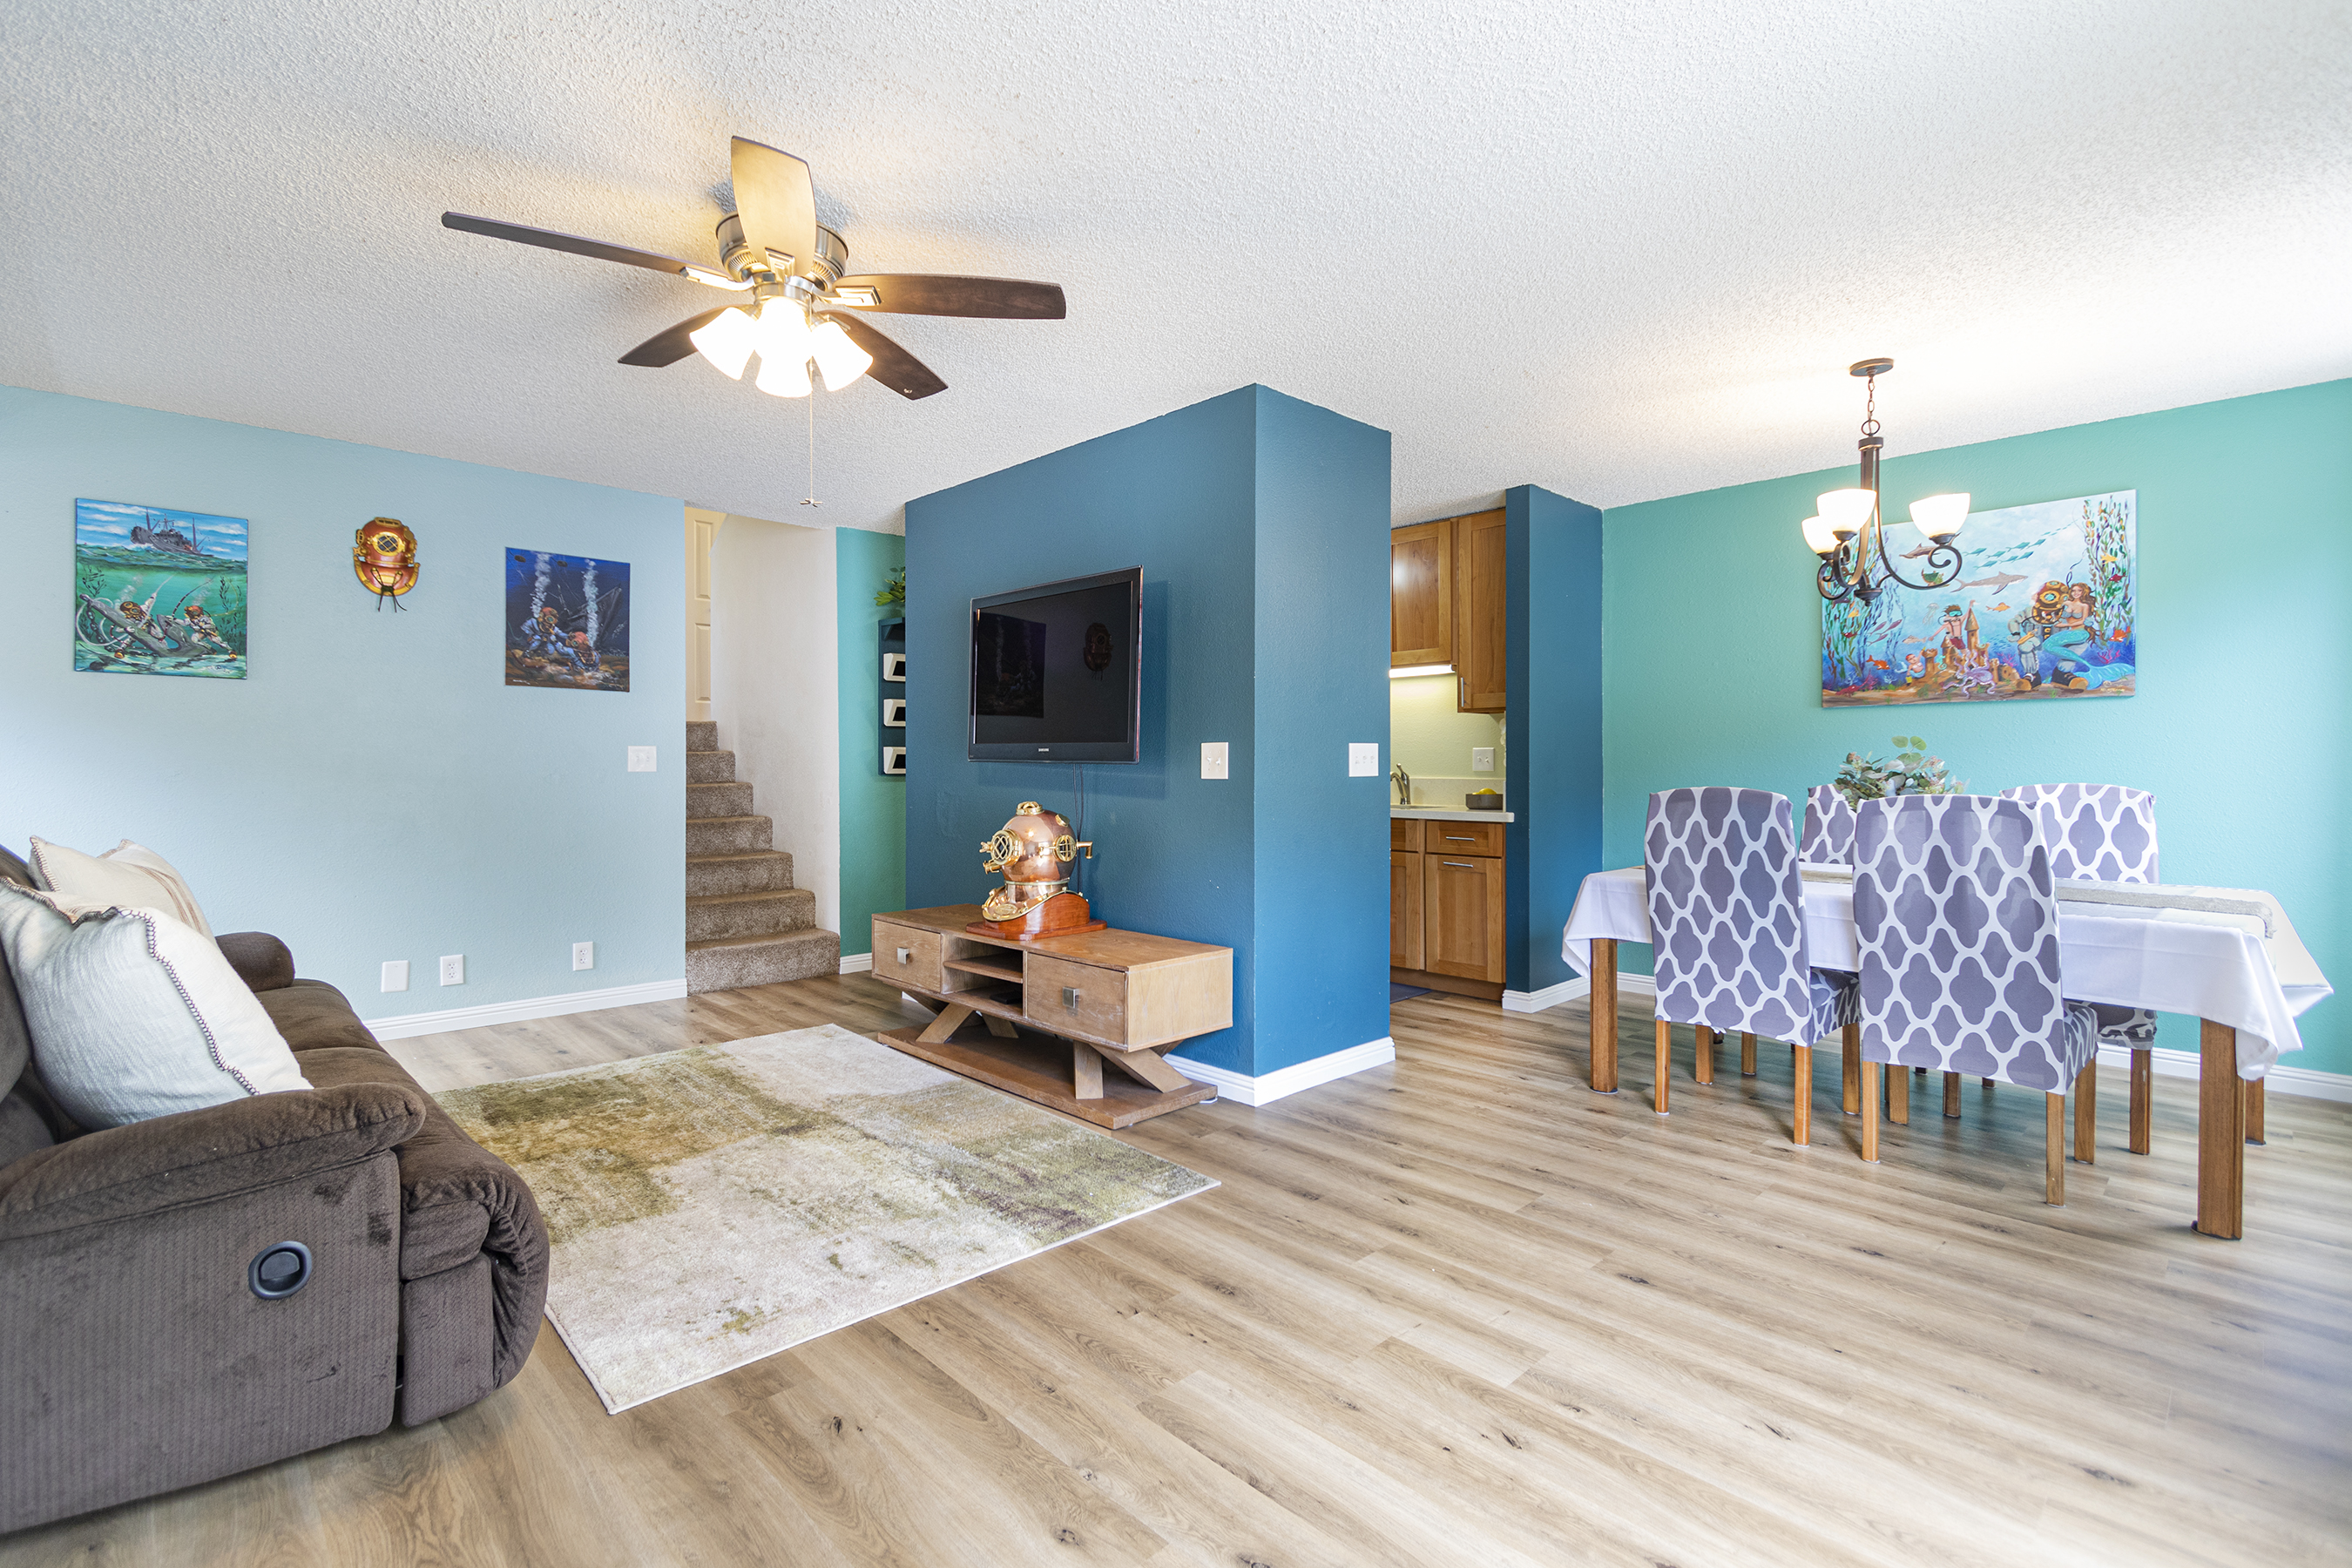 Living and Dining room view at 2532 Akepa St, Pearl City